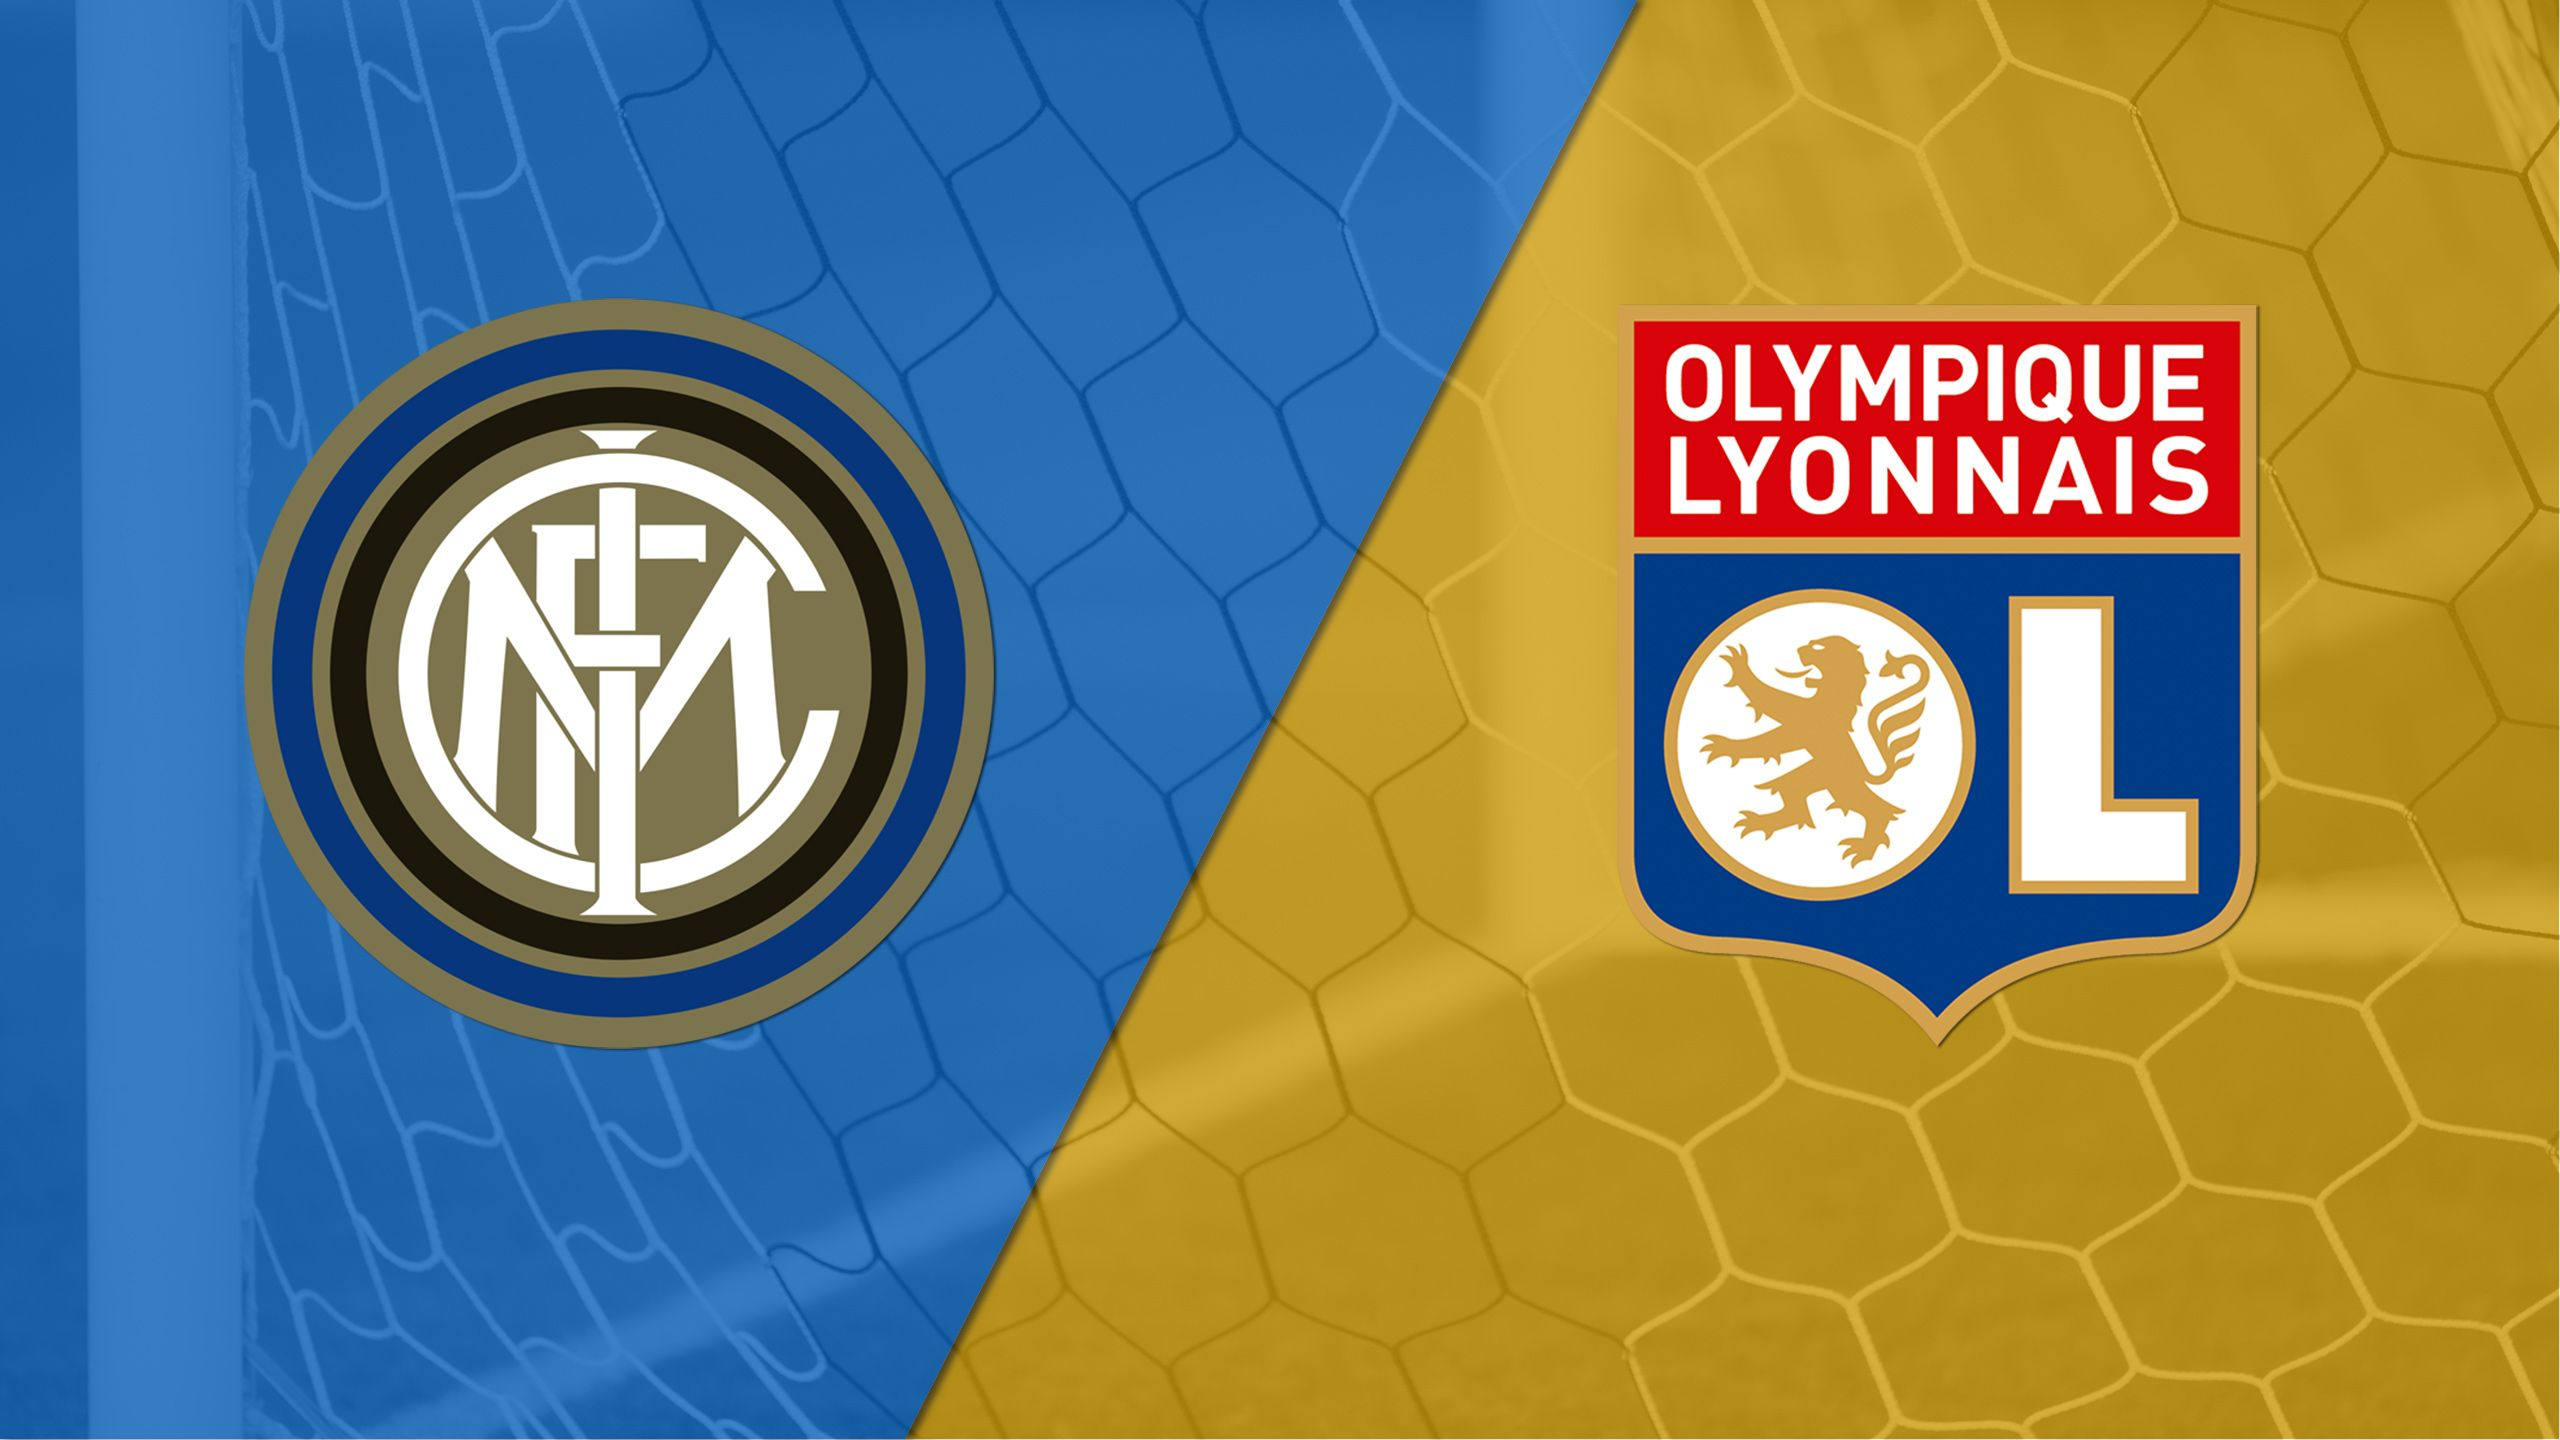 Internazionale vs. Olympique Lyonnais (International Champions Cup)